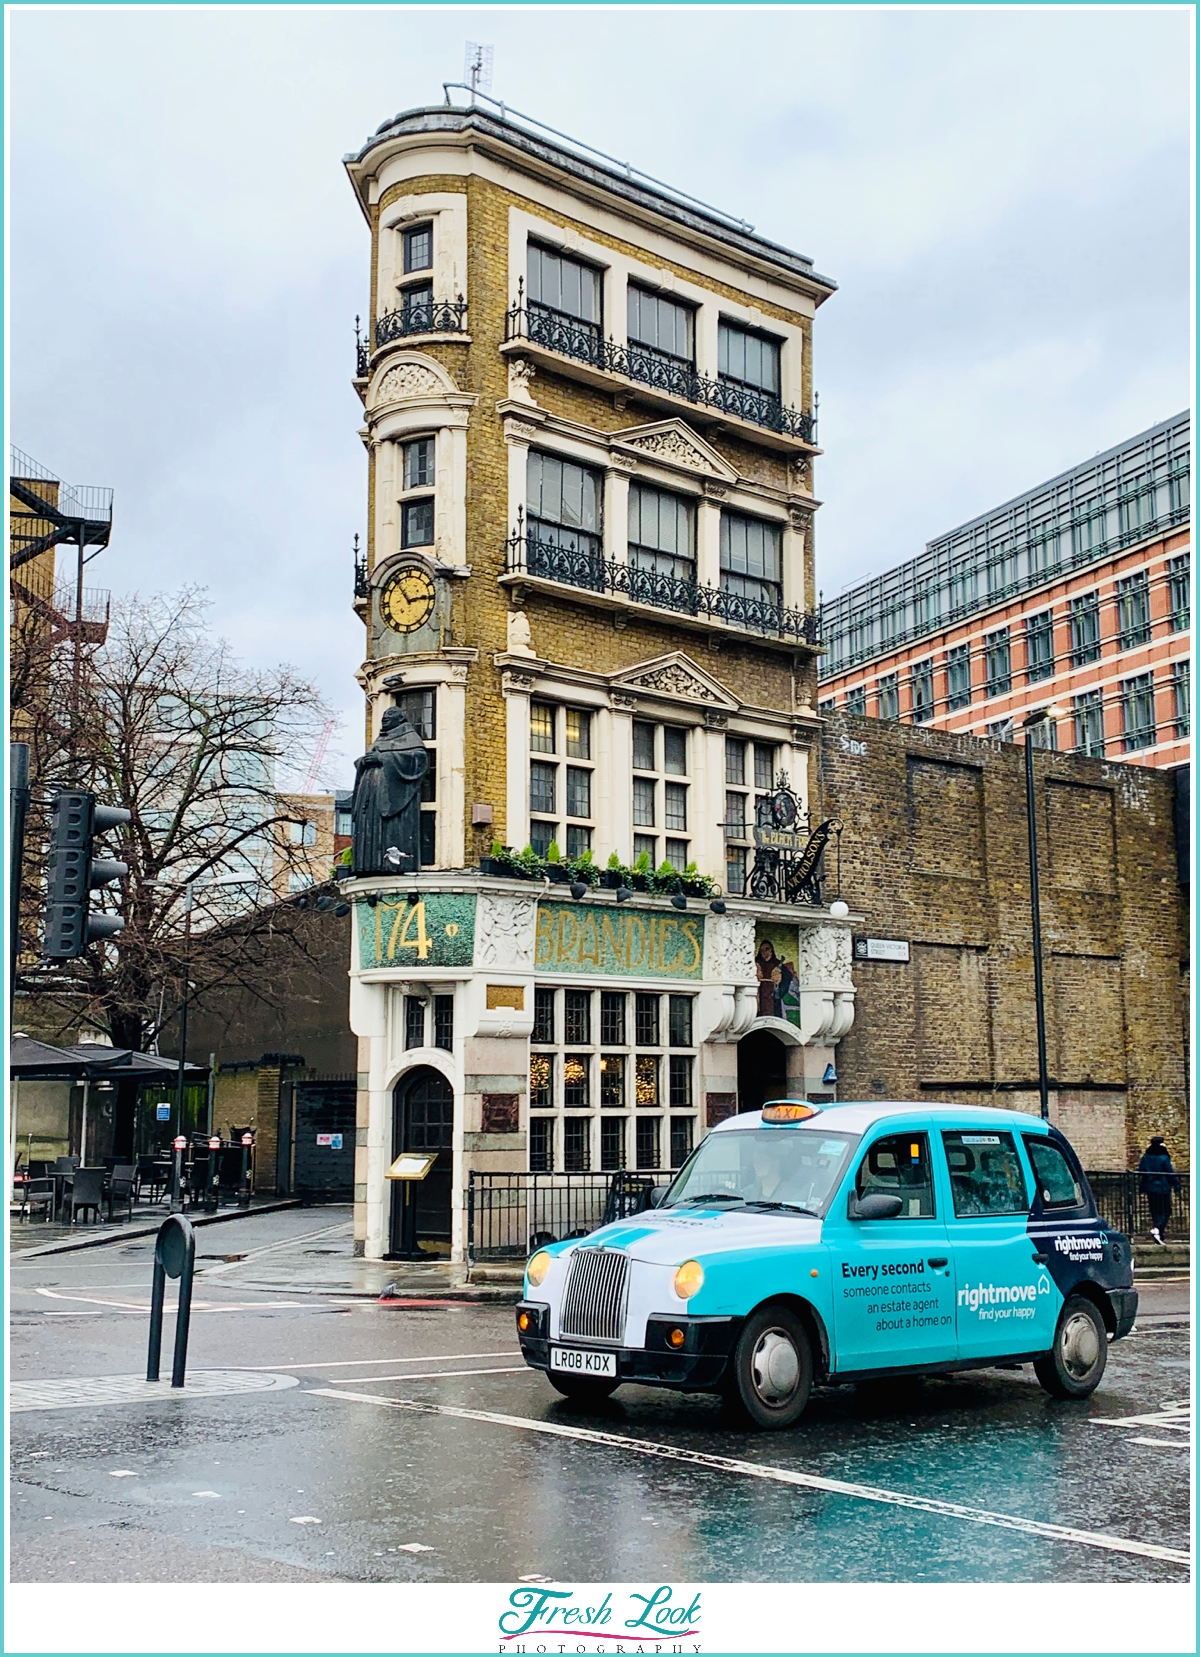 taxi cab in England